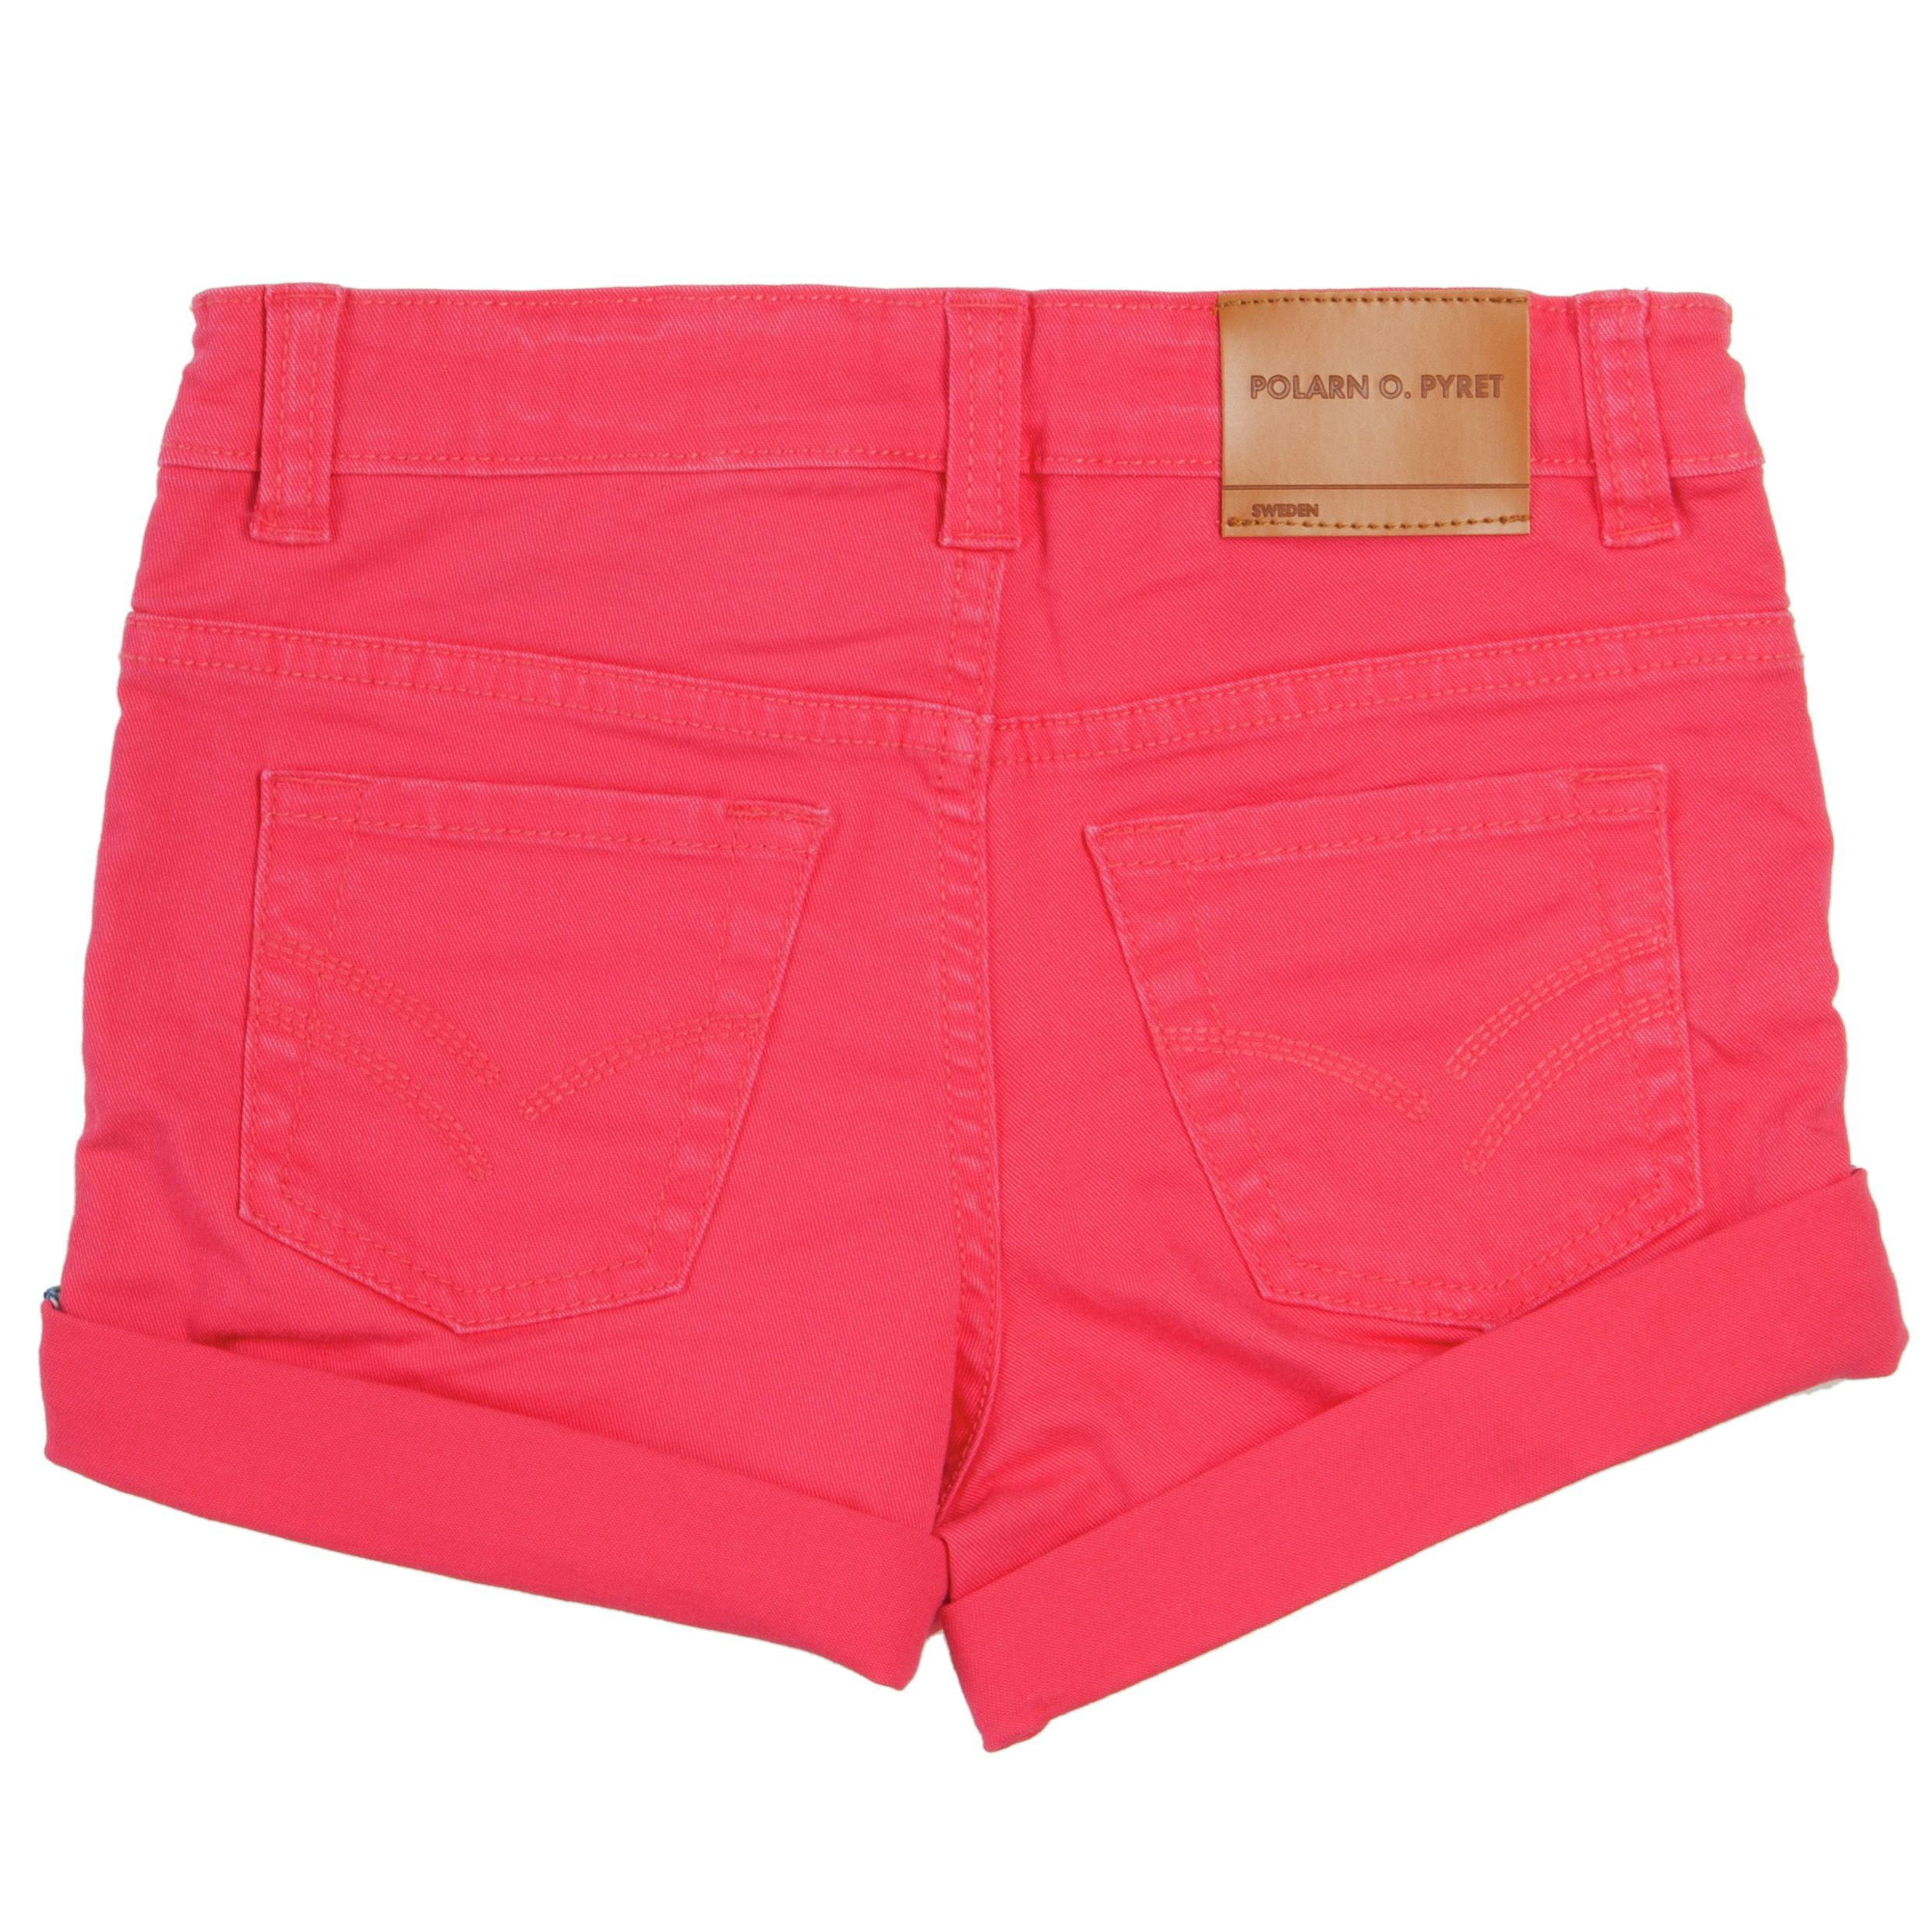 Girls 5 pocket pink shorts